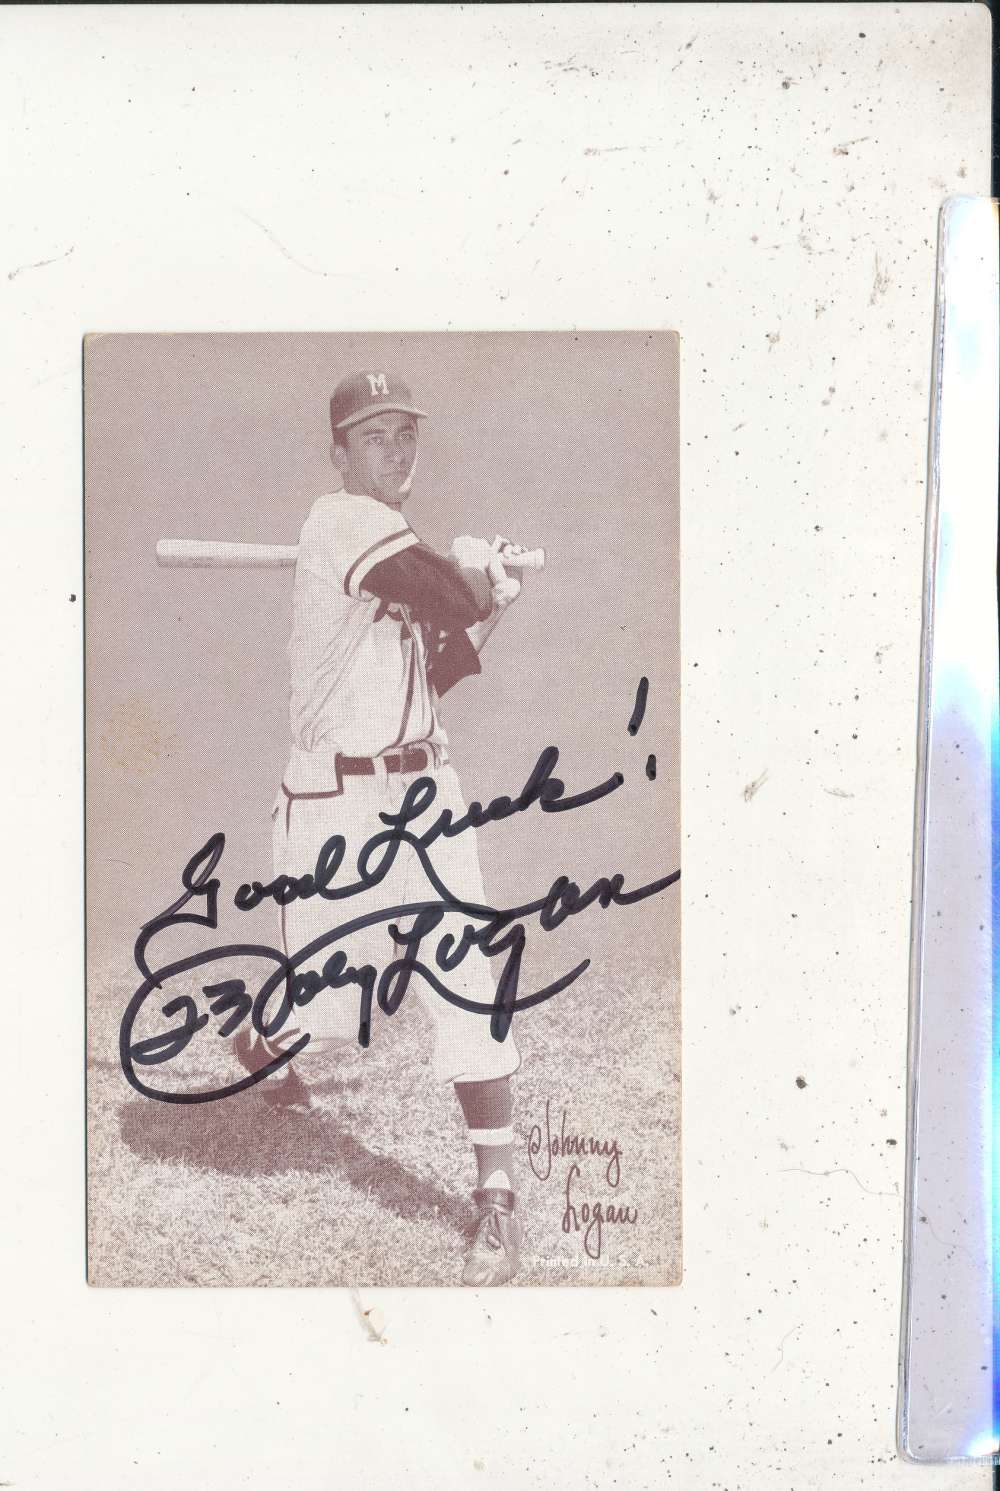 Johnny Logan braves Signed 1946-1966 exhibit card